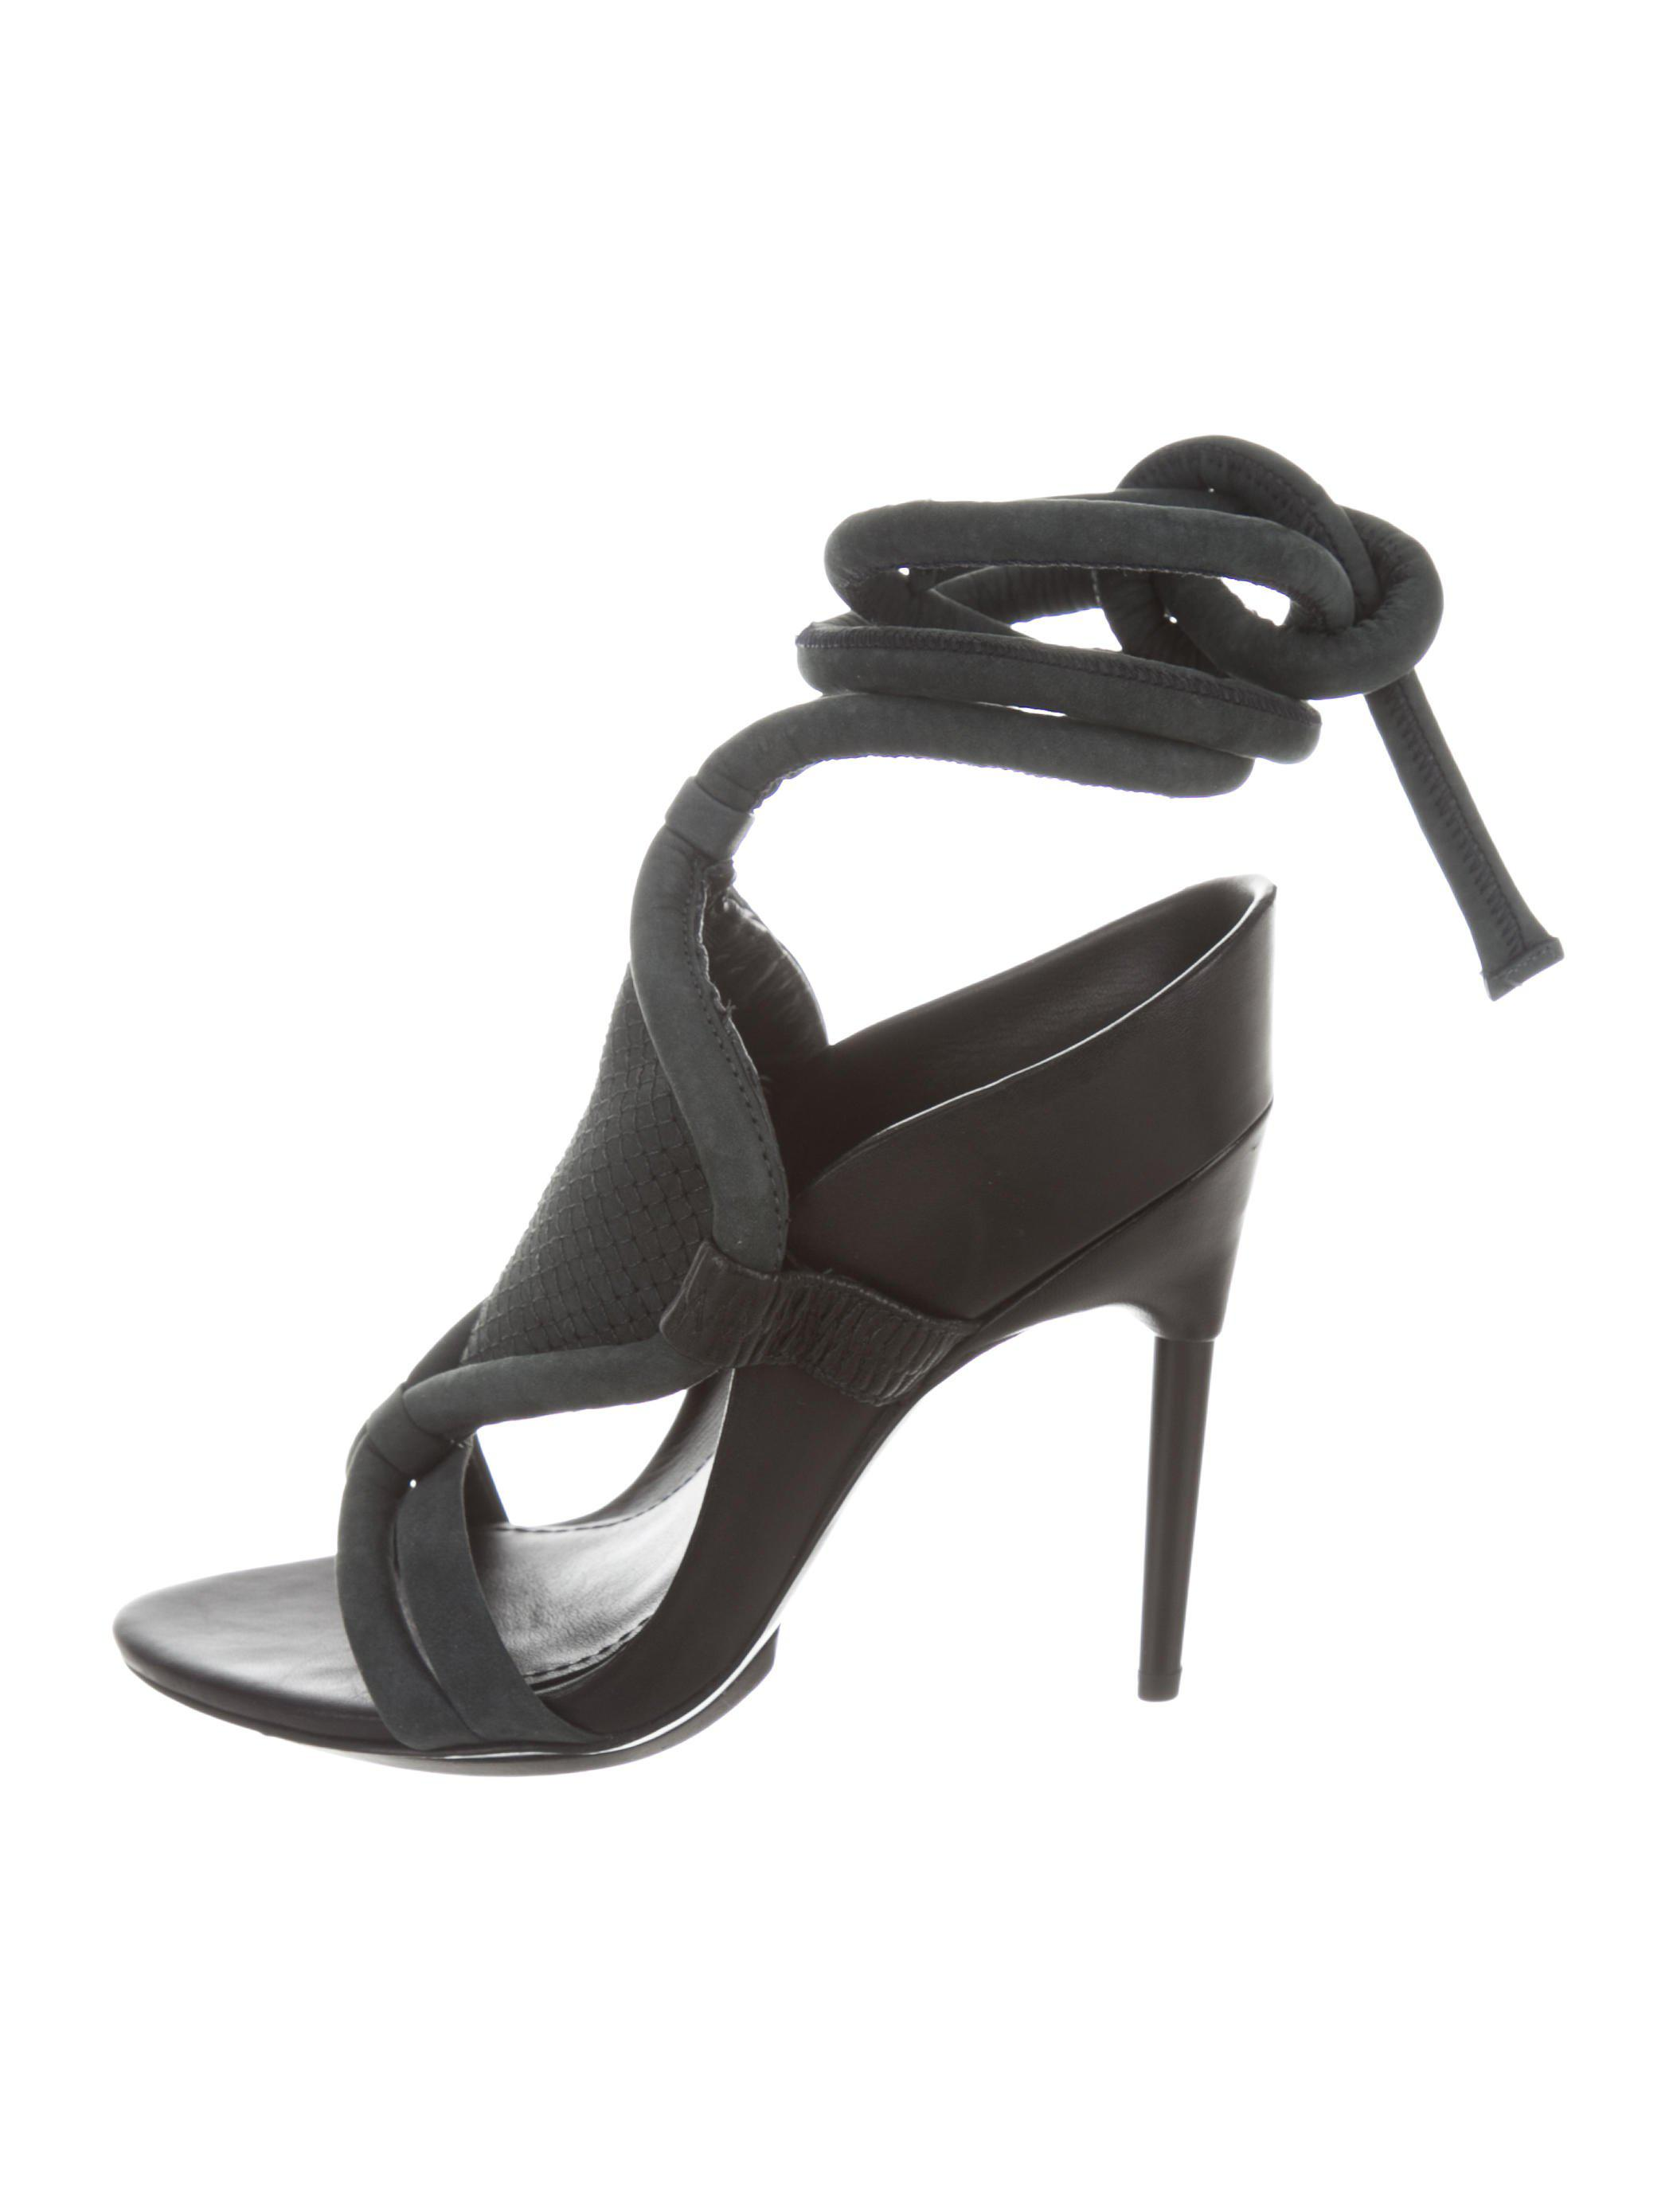 b0051526a72e Lyst - 3.1 Phillip Lim Suede Lace-tie Sandals in Black